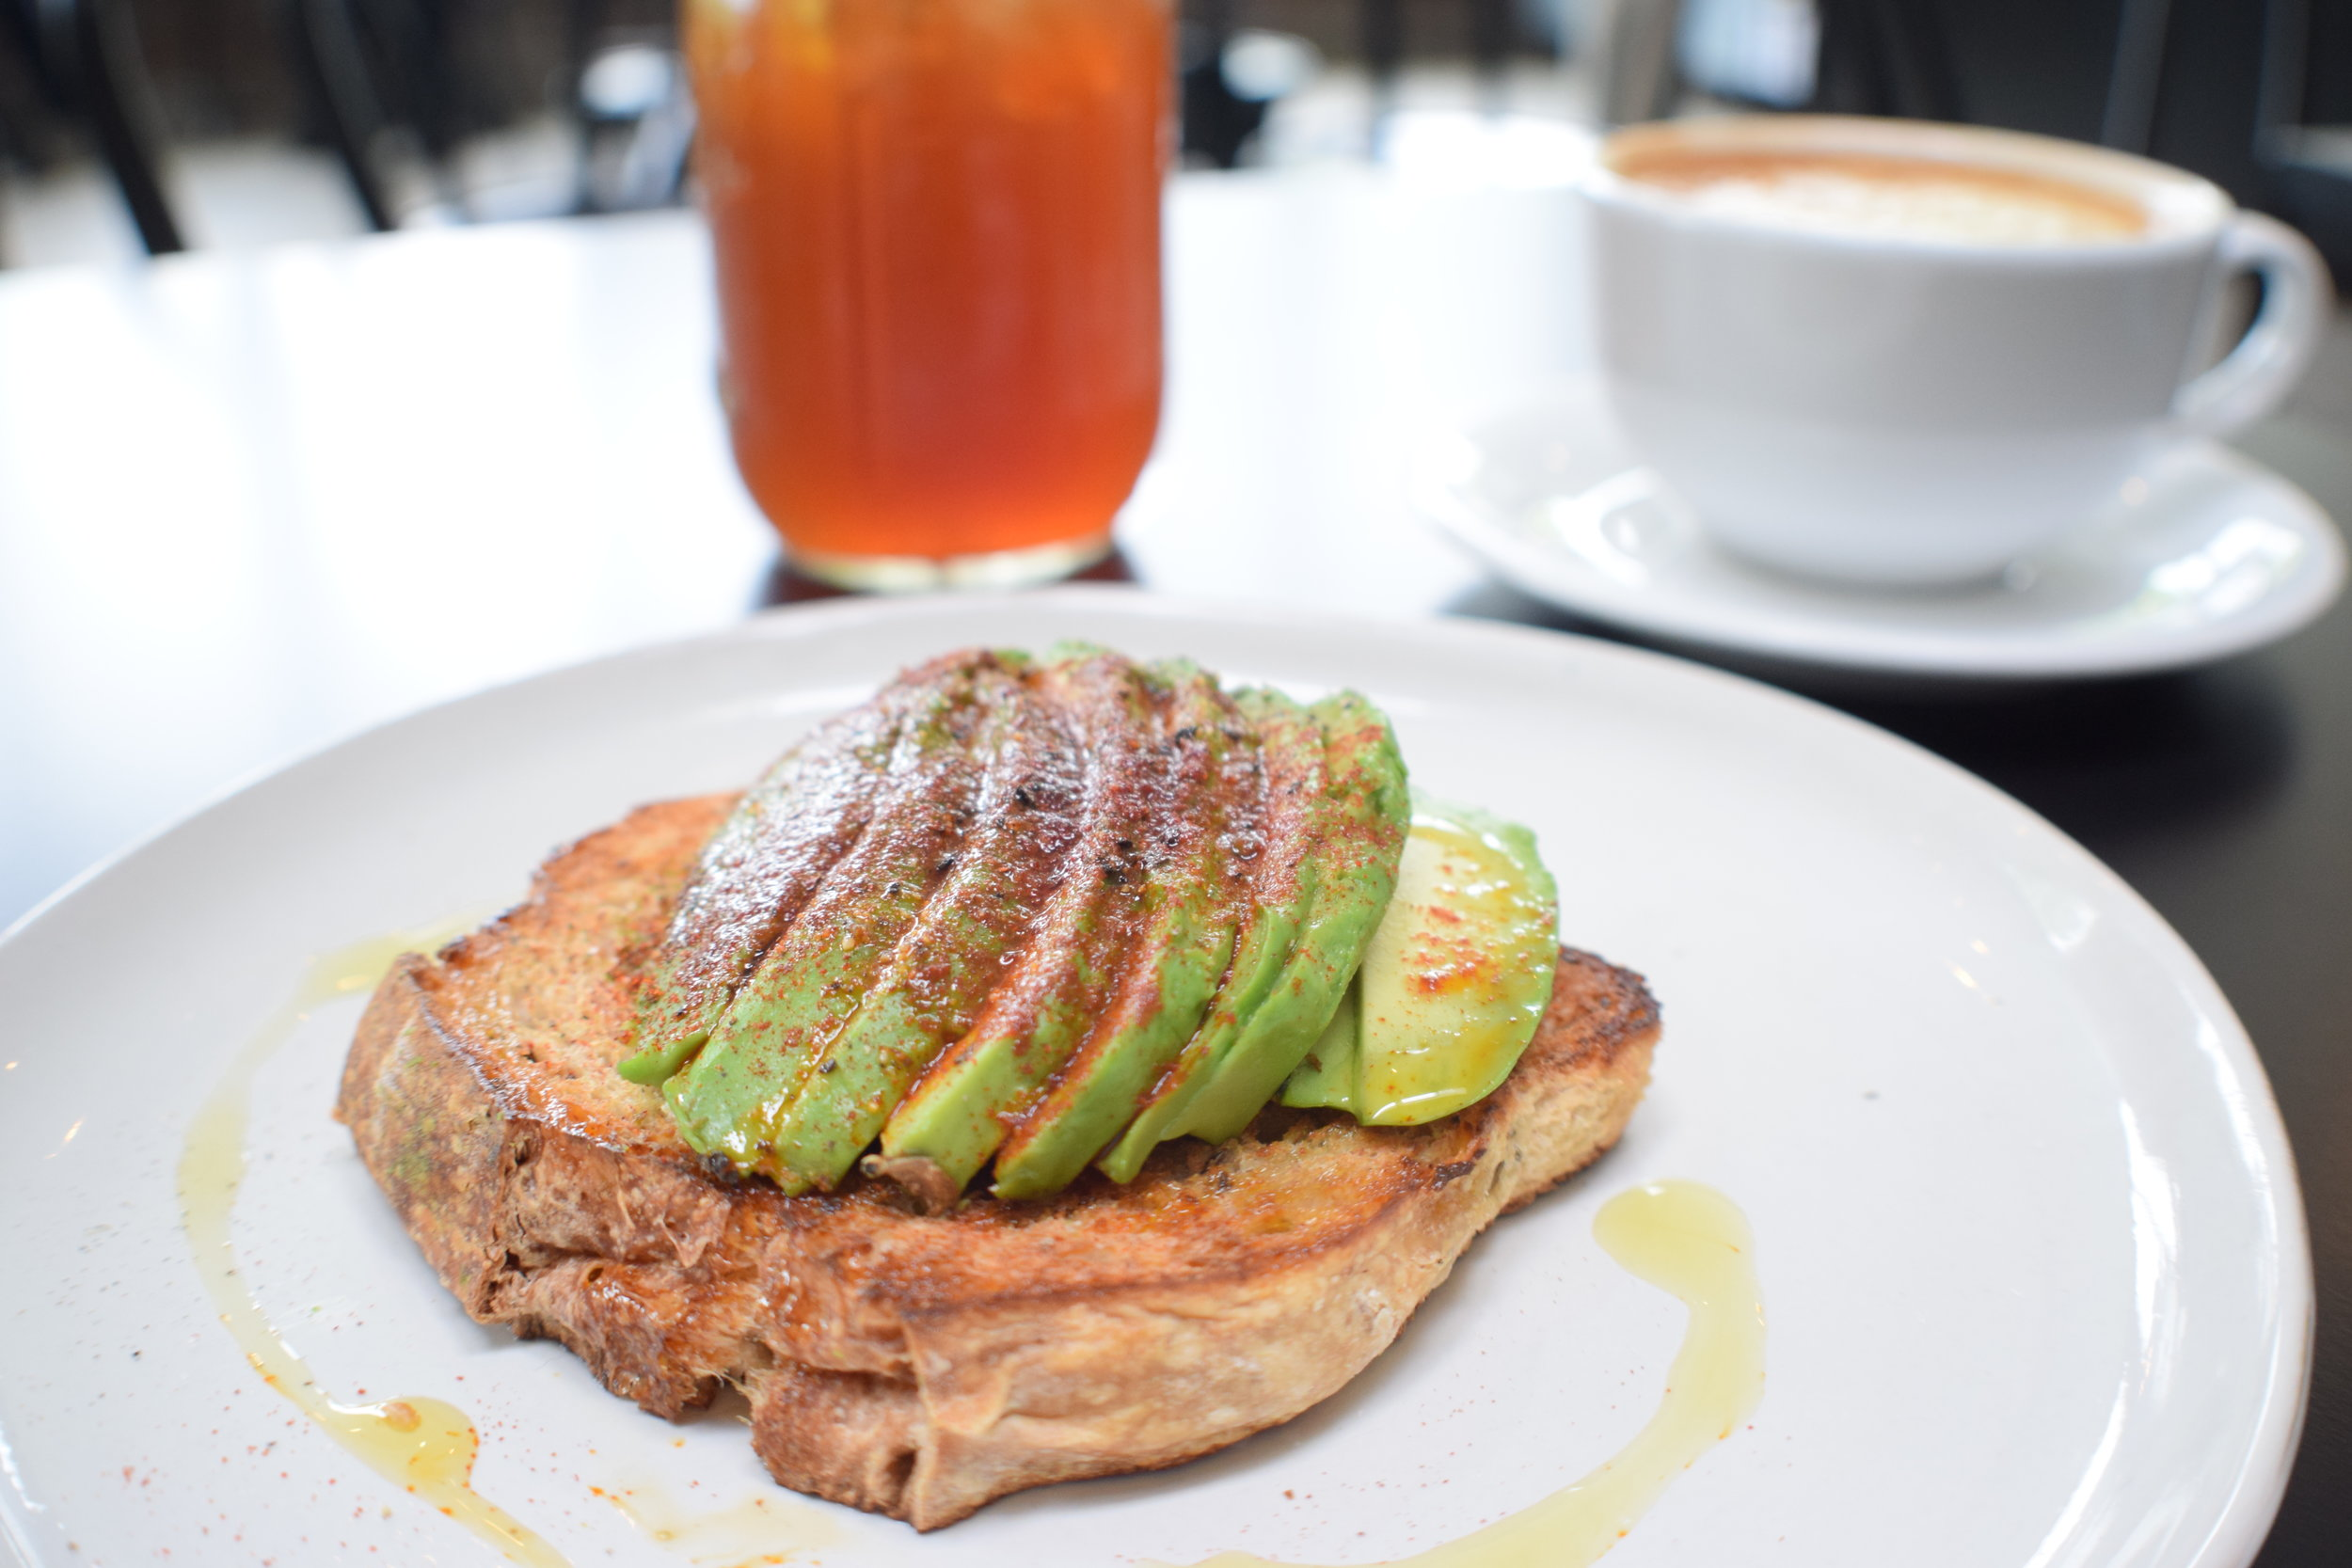 Tipico's Avocado toast on Breadhive bread pairs perfectly with a glass of Cold Brucha.